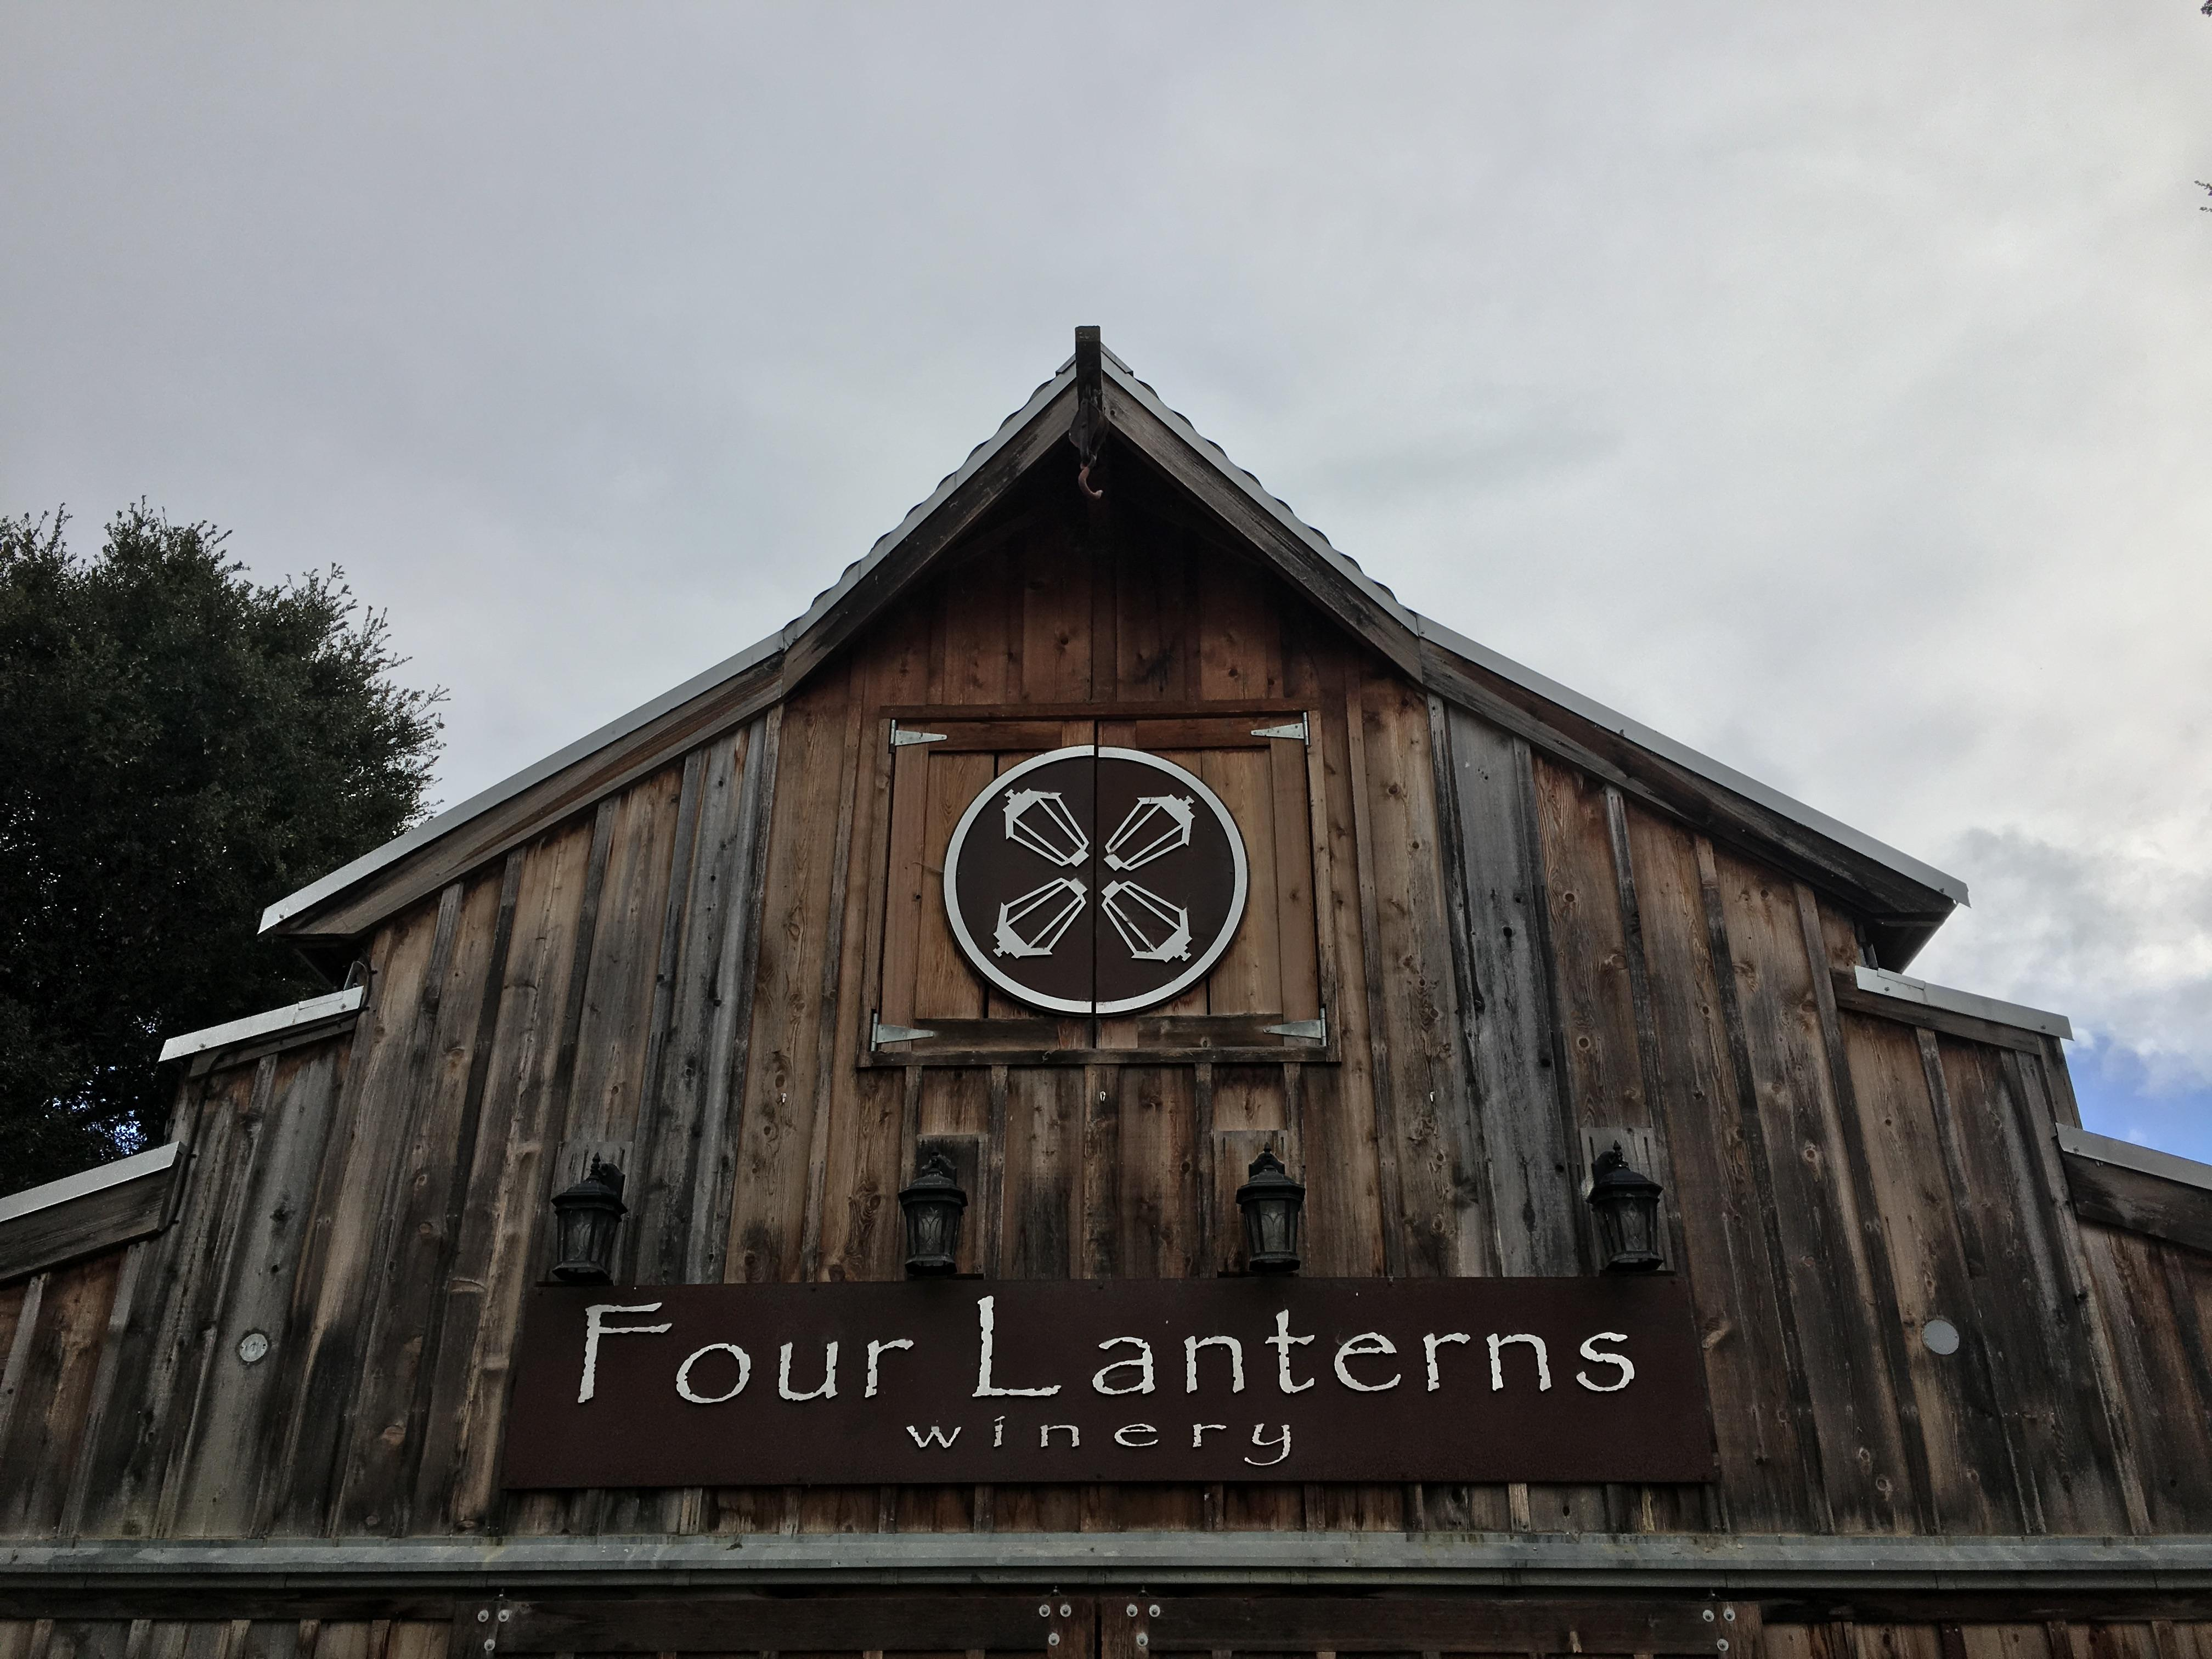 Four Lanterns Winery